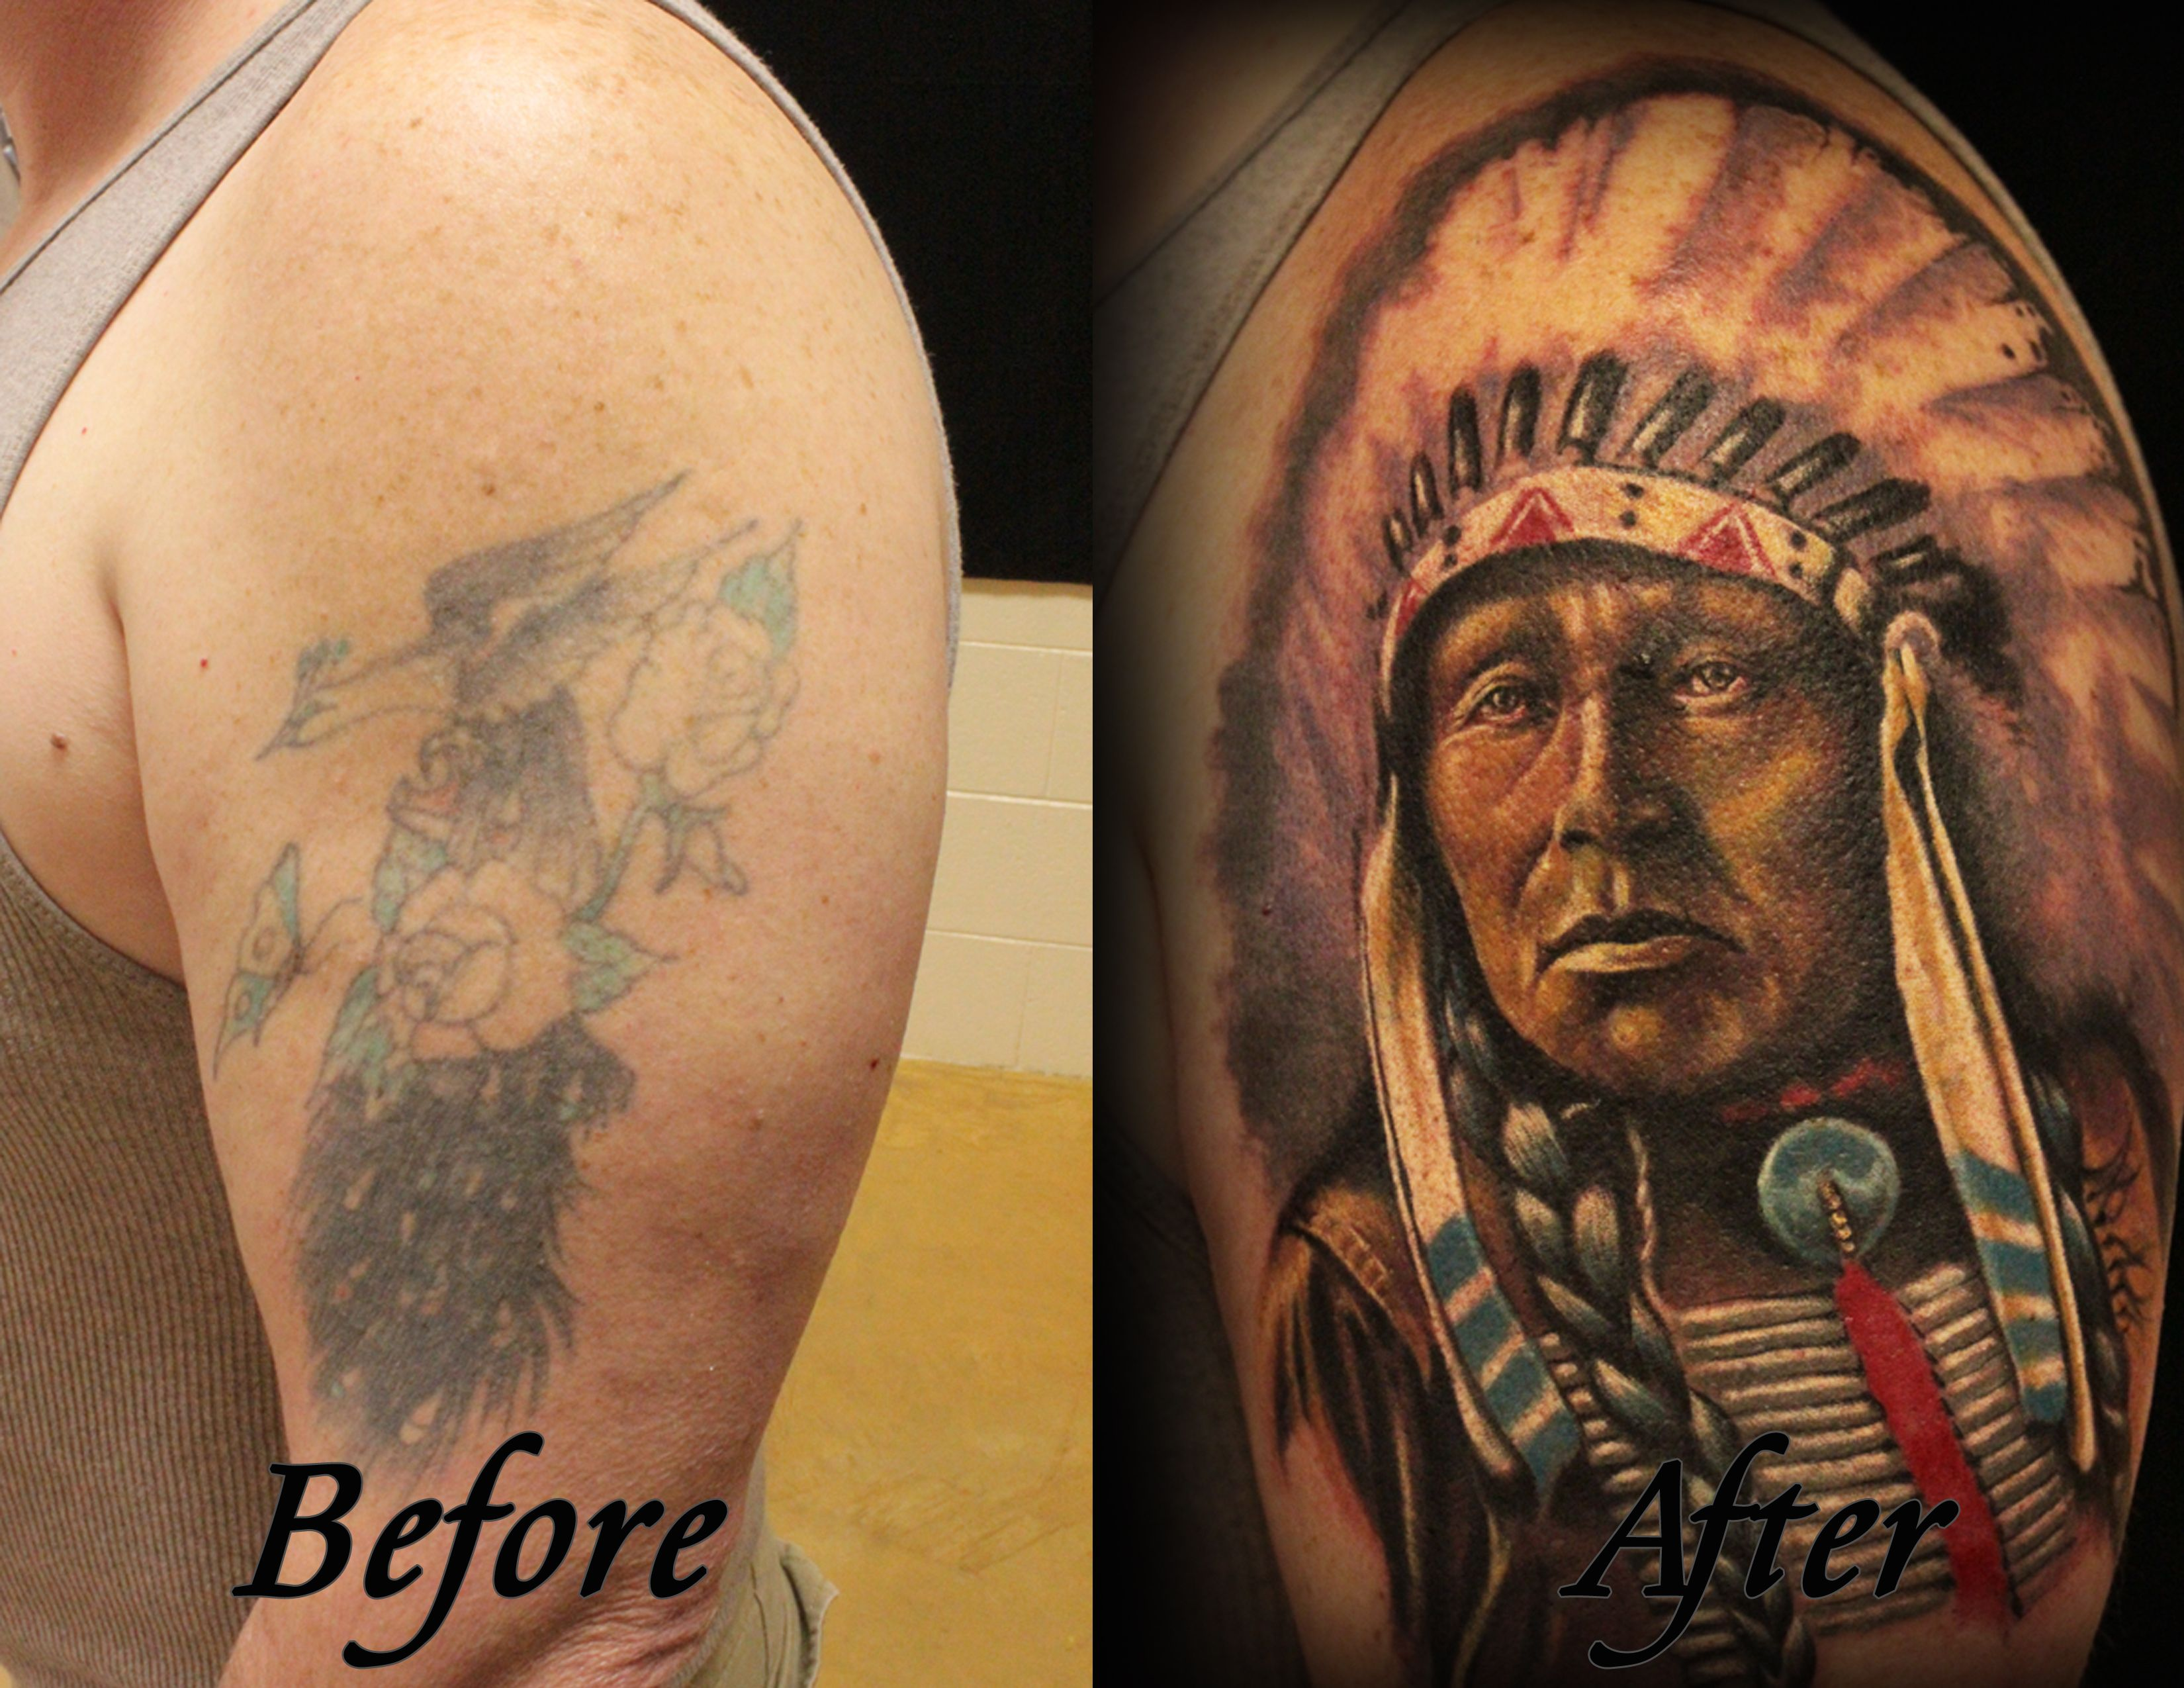 My Cousin Mark Is The Best Tattoo Artist In Nc Tattoo Artists Cool Tattoos Portrait Tattoo